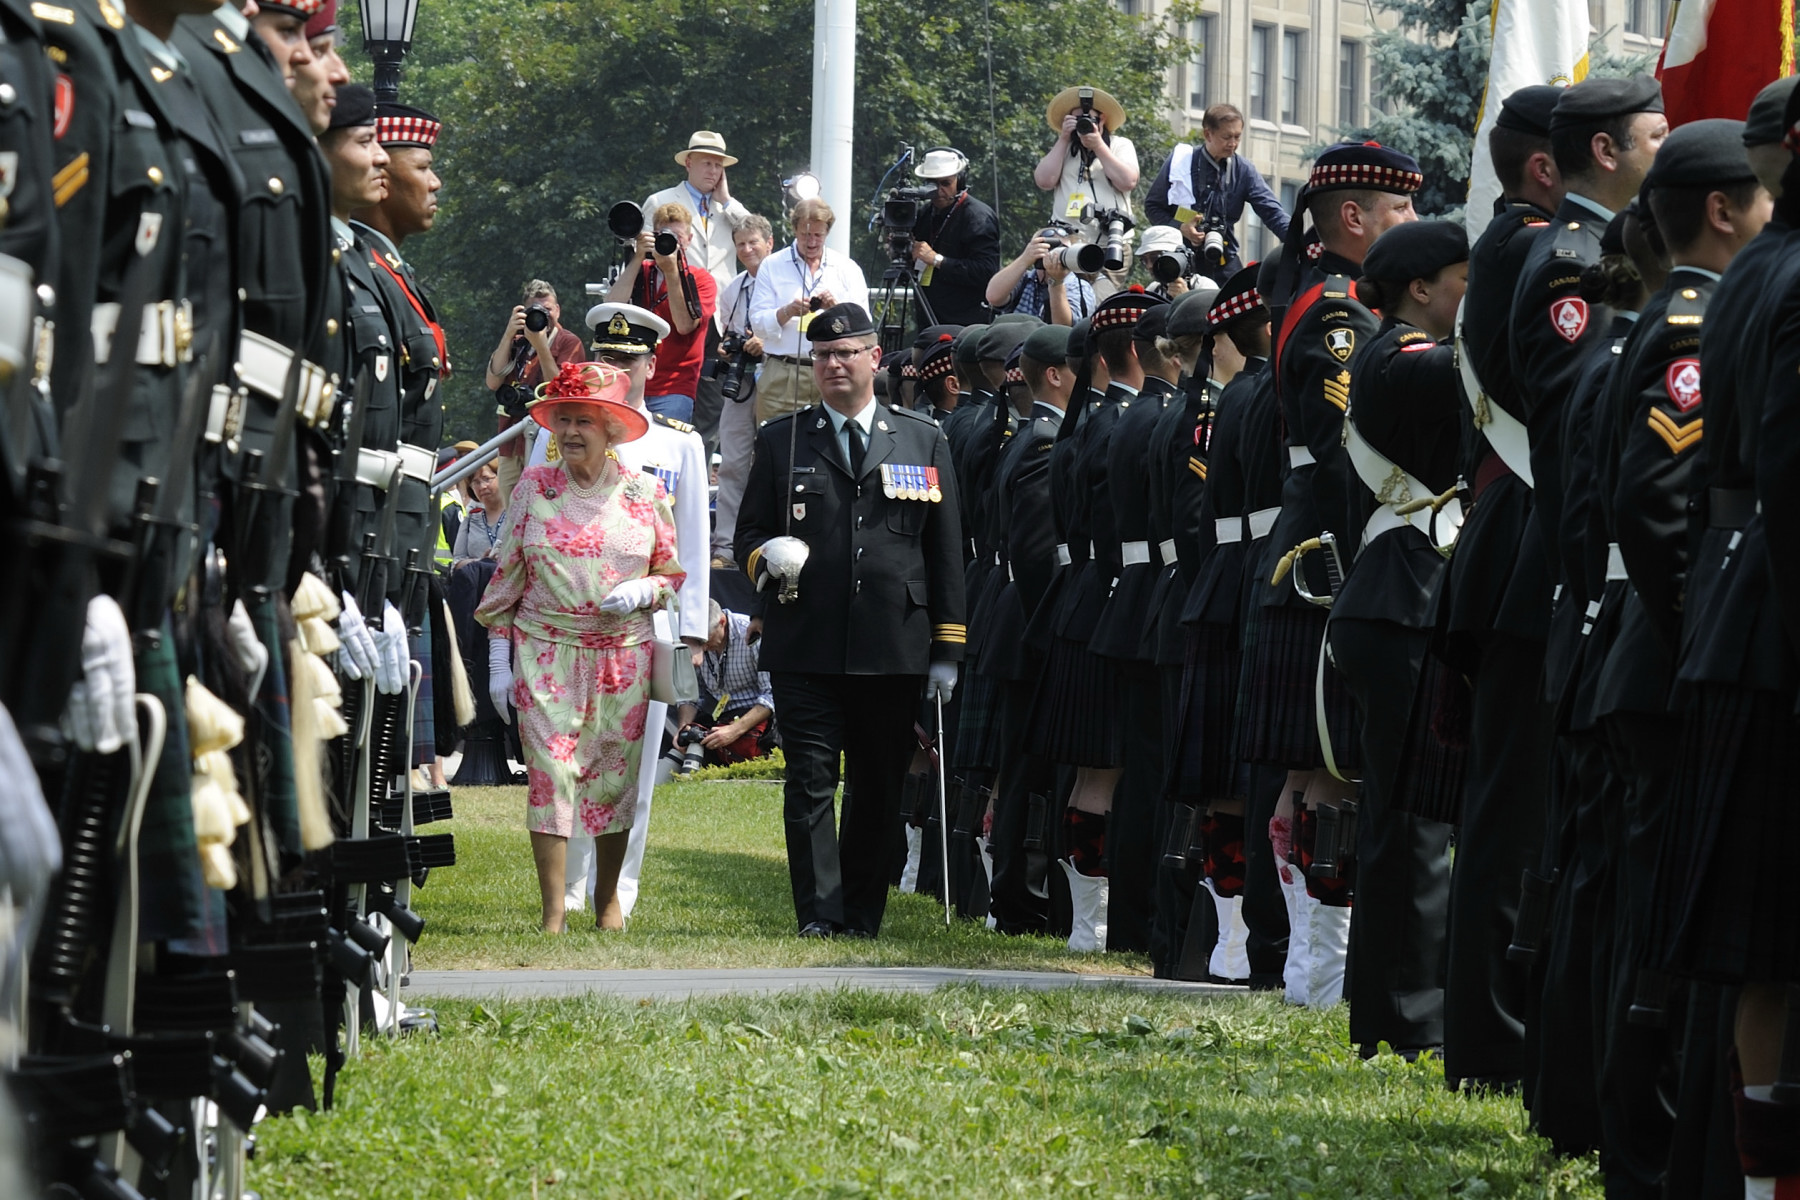 The Queen proceeded to an inspection of the Guard of Honour.